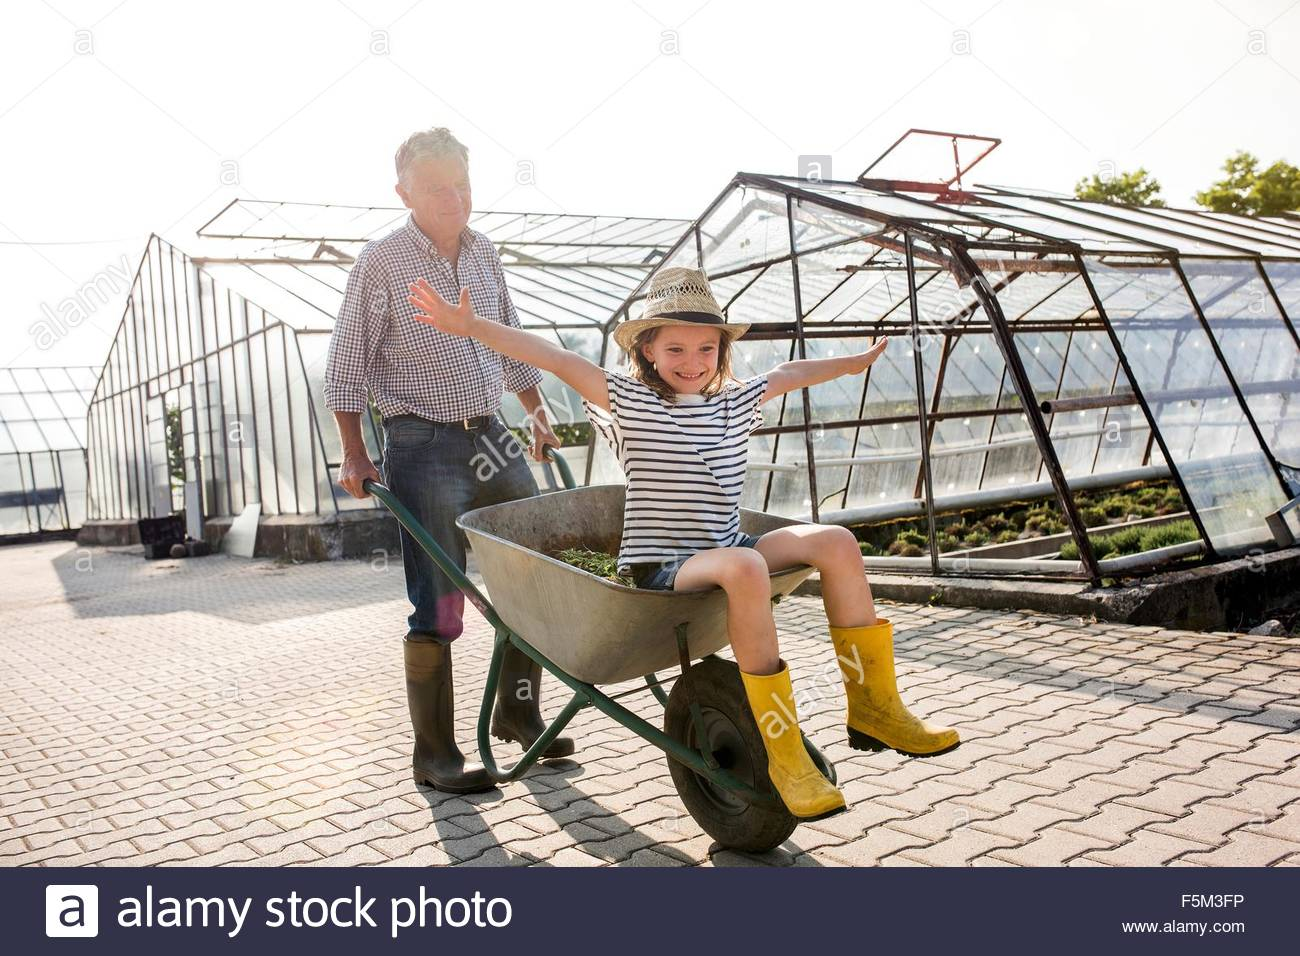 Grandfather pushing granddaughter in wheelbarrow, arms open looking at camera smiling - Stock Image